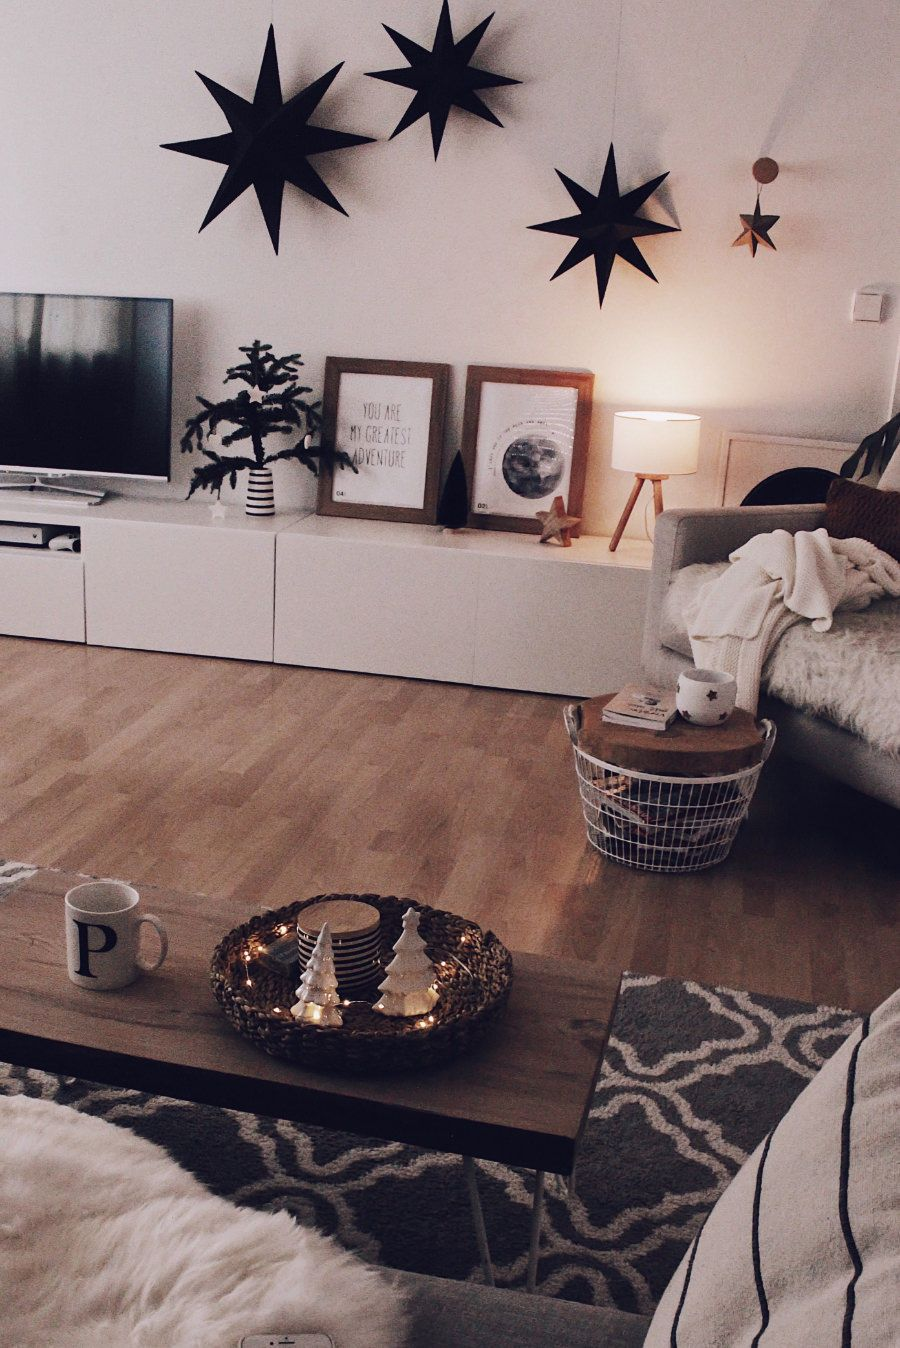 Pinterest Wohnzimmer Beleuchtung Die Smarte Beleuchtung Mit Philips Hue White And Color Ambiance